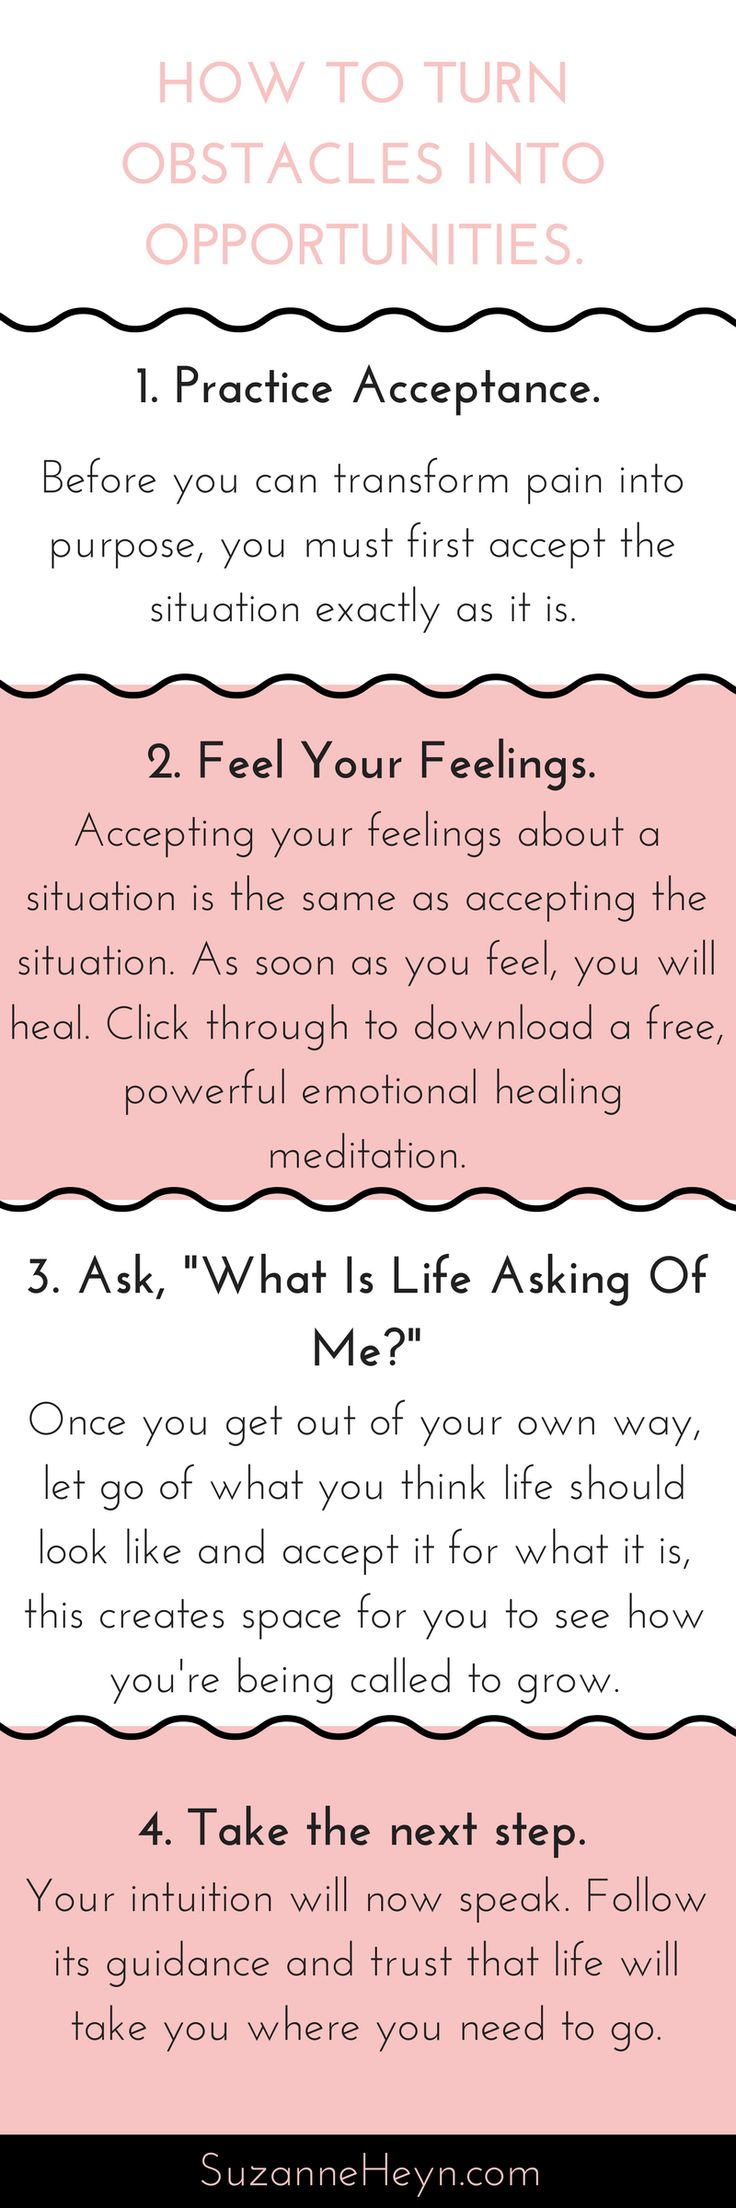 Learn how to turn life challenges into opportunities. Click through for a free emotional healing meditation! spirituality self-love self-care yoga inspiration